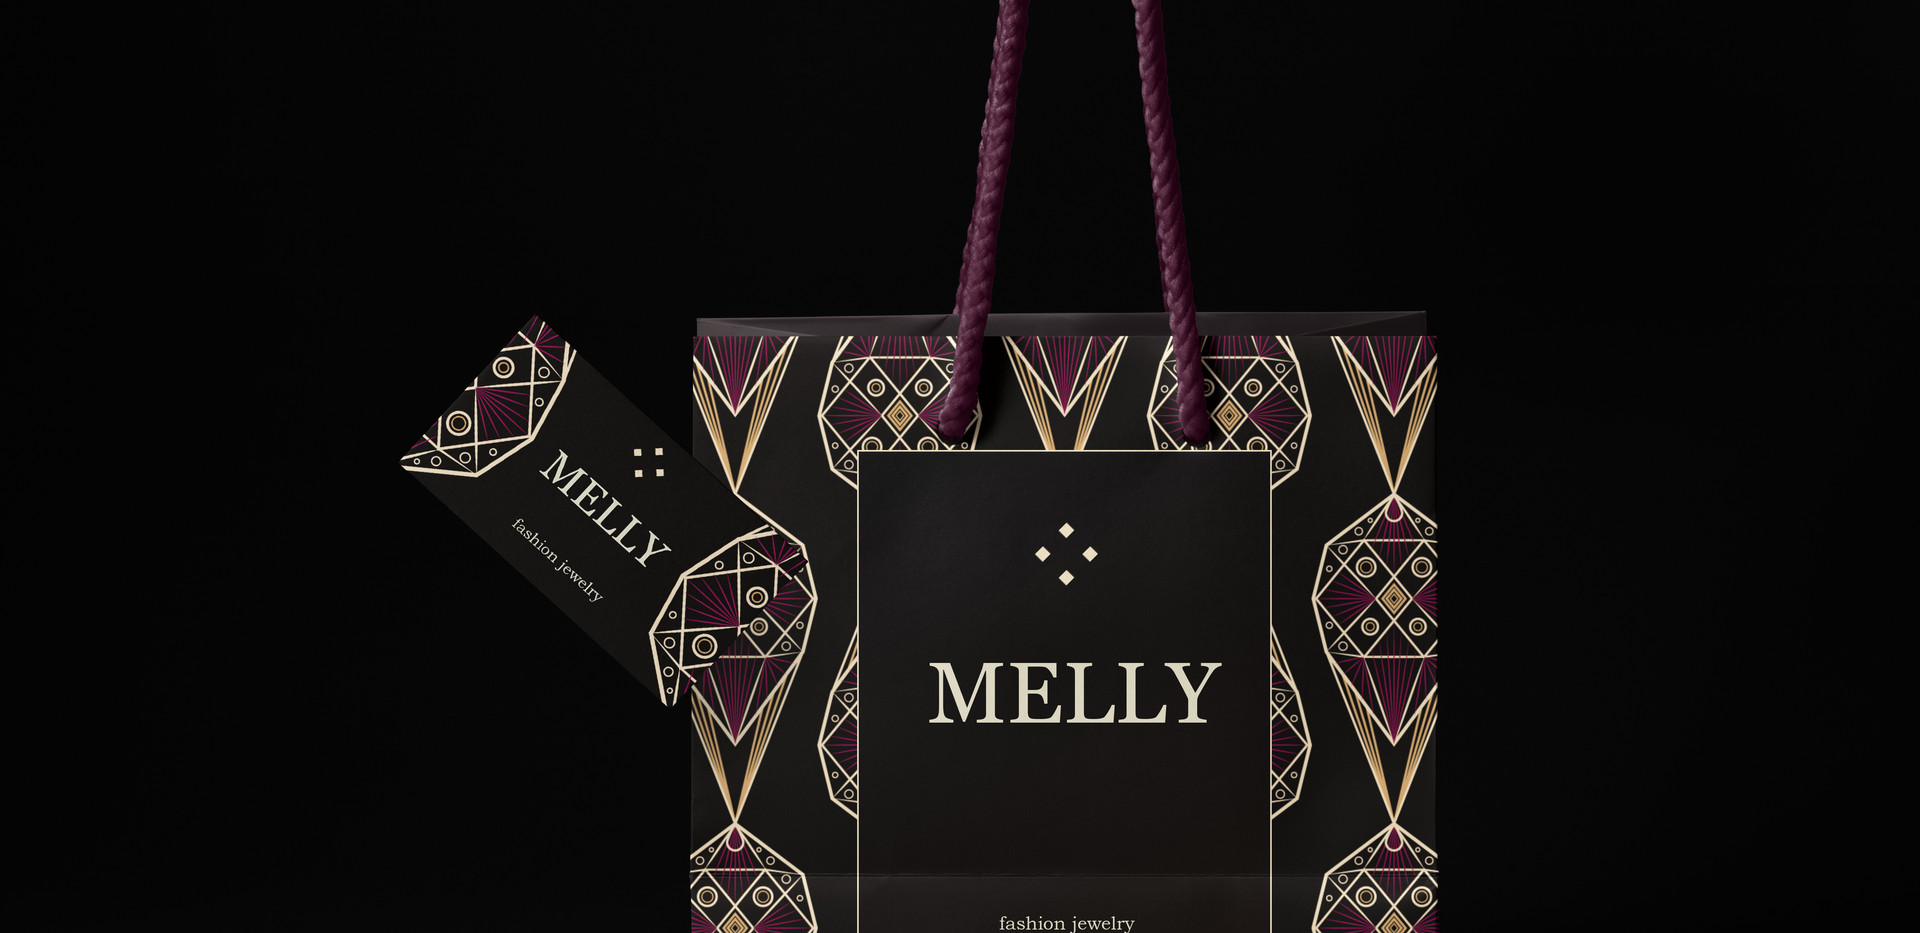 Gravity-Paper-Bag-Mockup-vol3.jpg